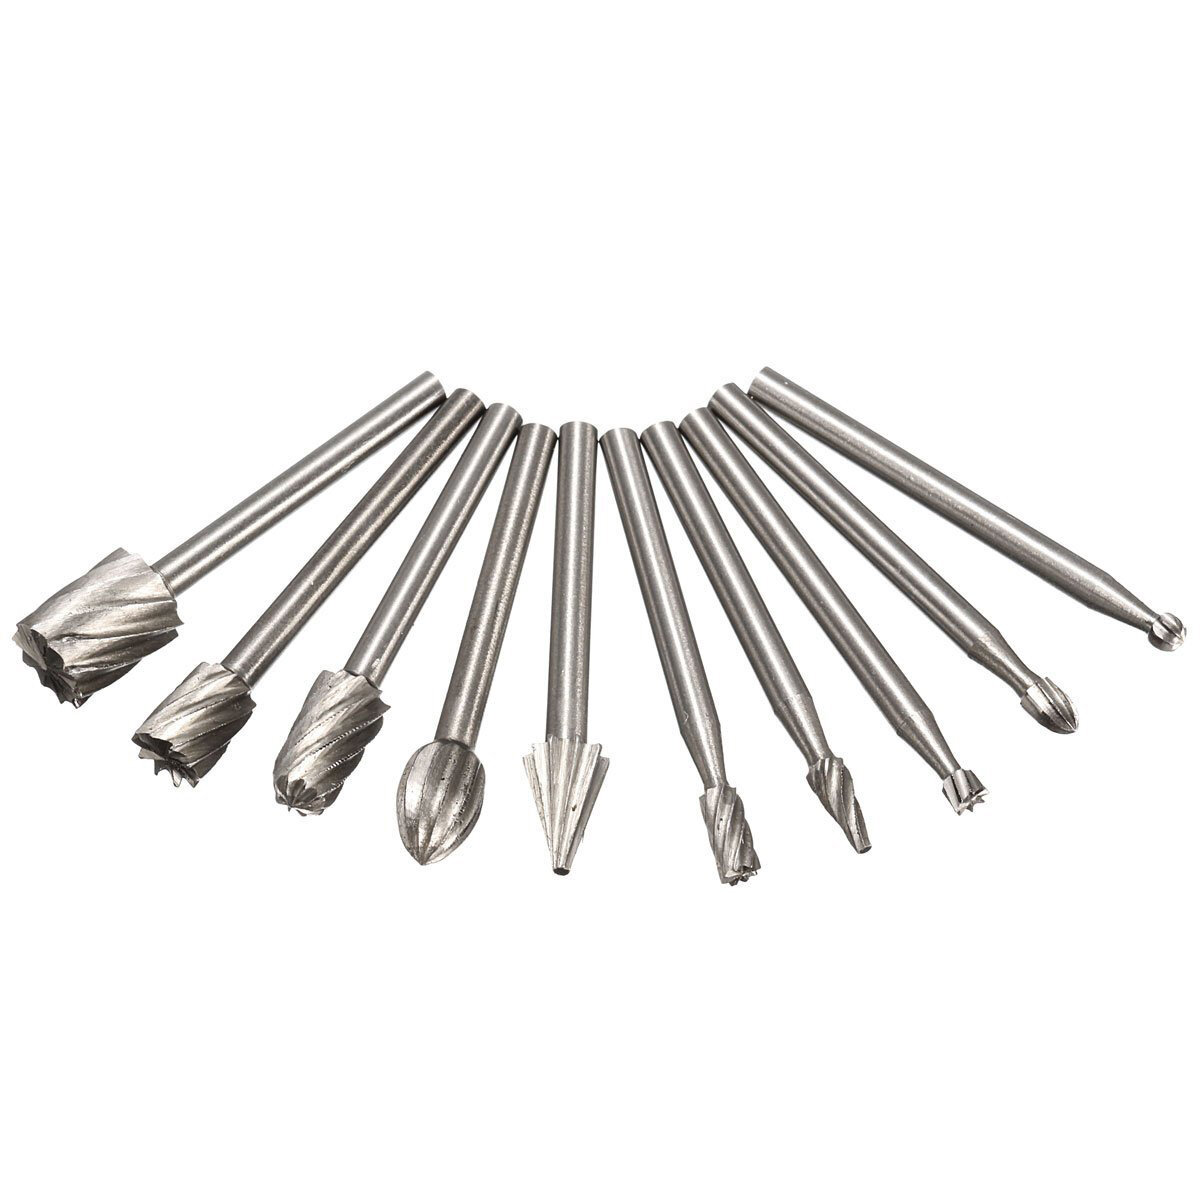 10pcs Dremel Rotary Tools Hss Mini Drill Bit Set Cutting Routing Router Grinding Bits Milling Cutters For Wood Carving Cut Tools Various Styles Abrasive Tools